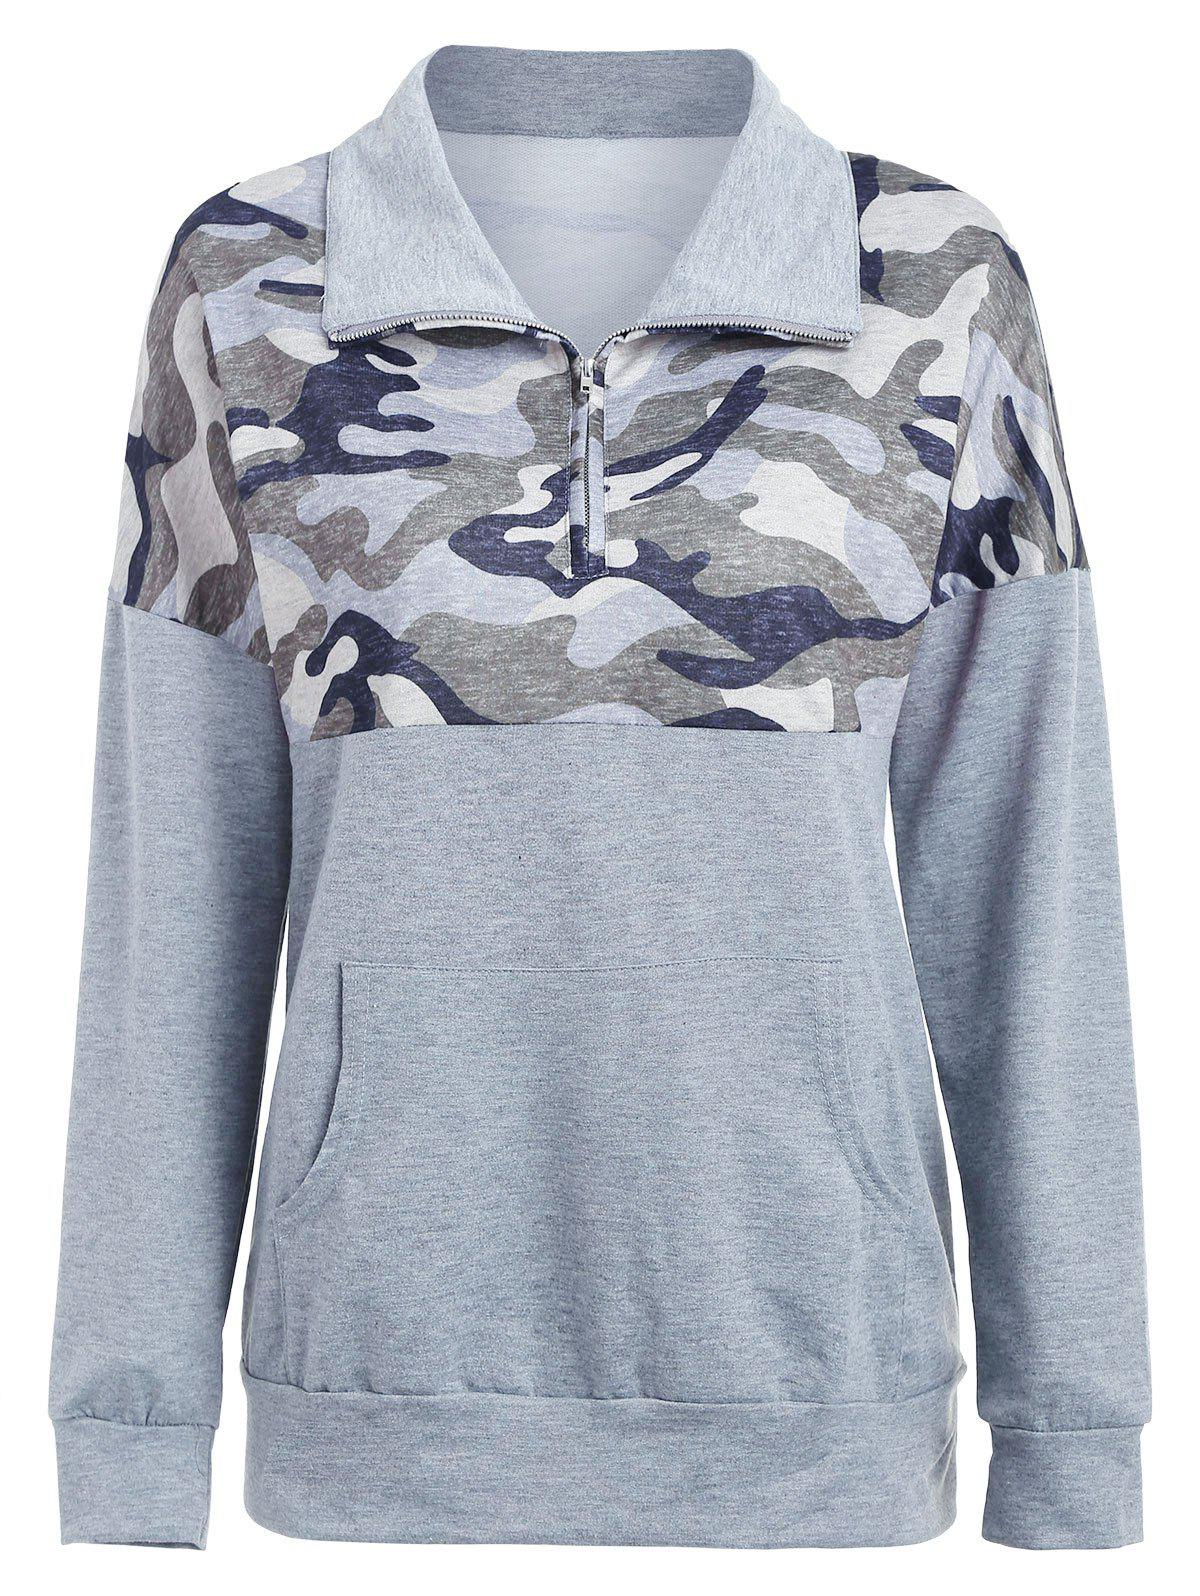 Sale Kangaroo Pocket Printed Zip Sweatshirt